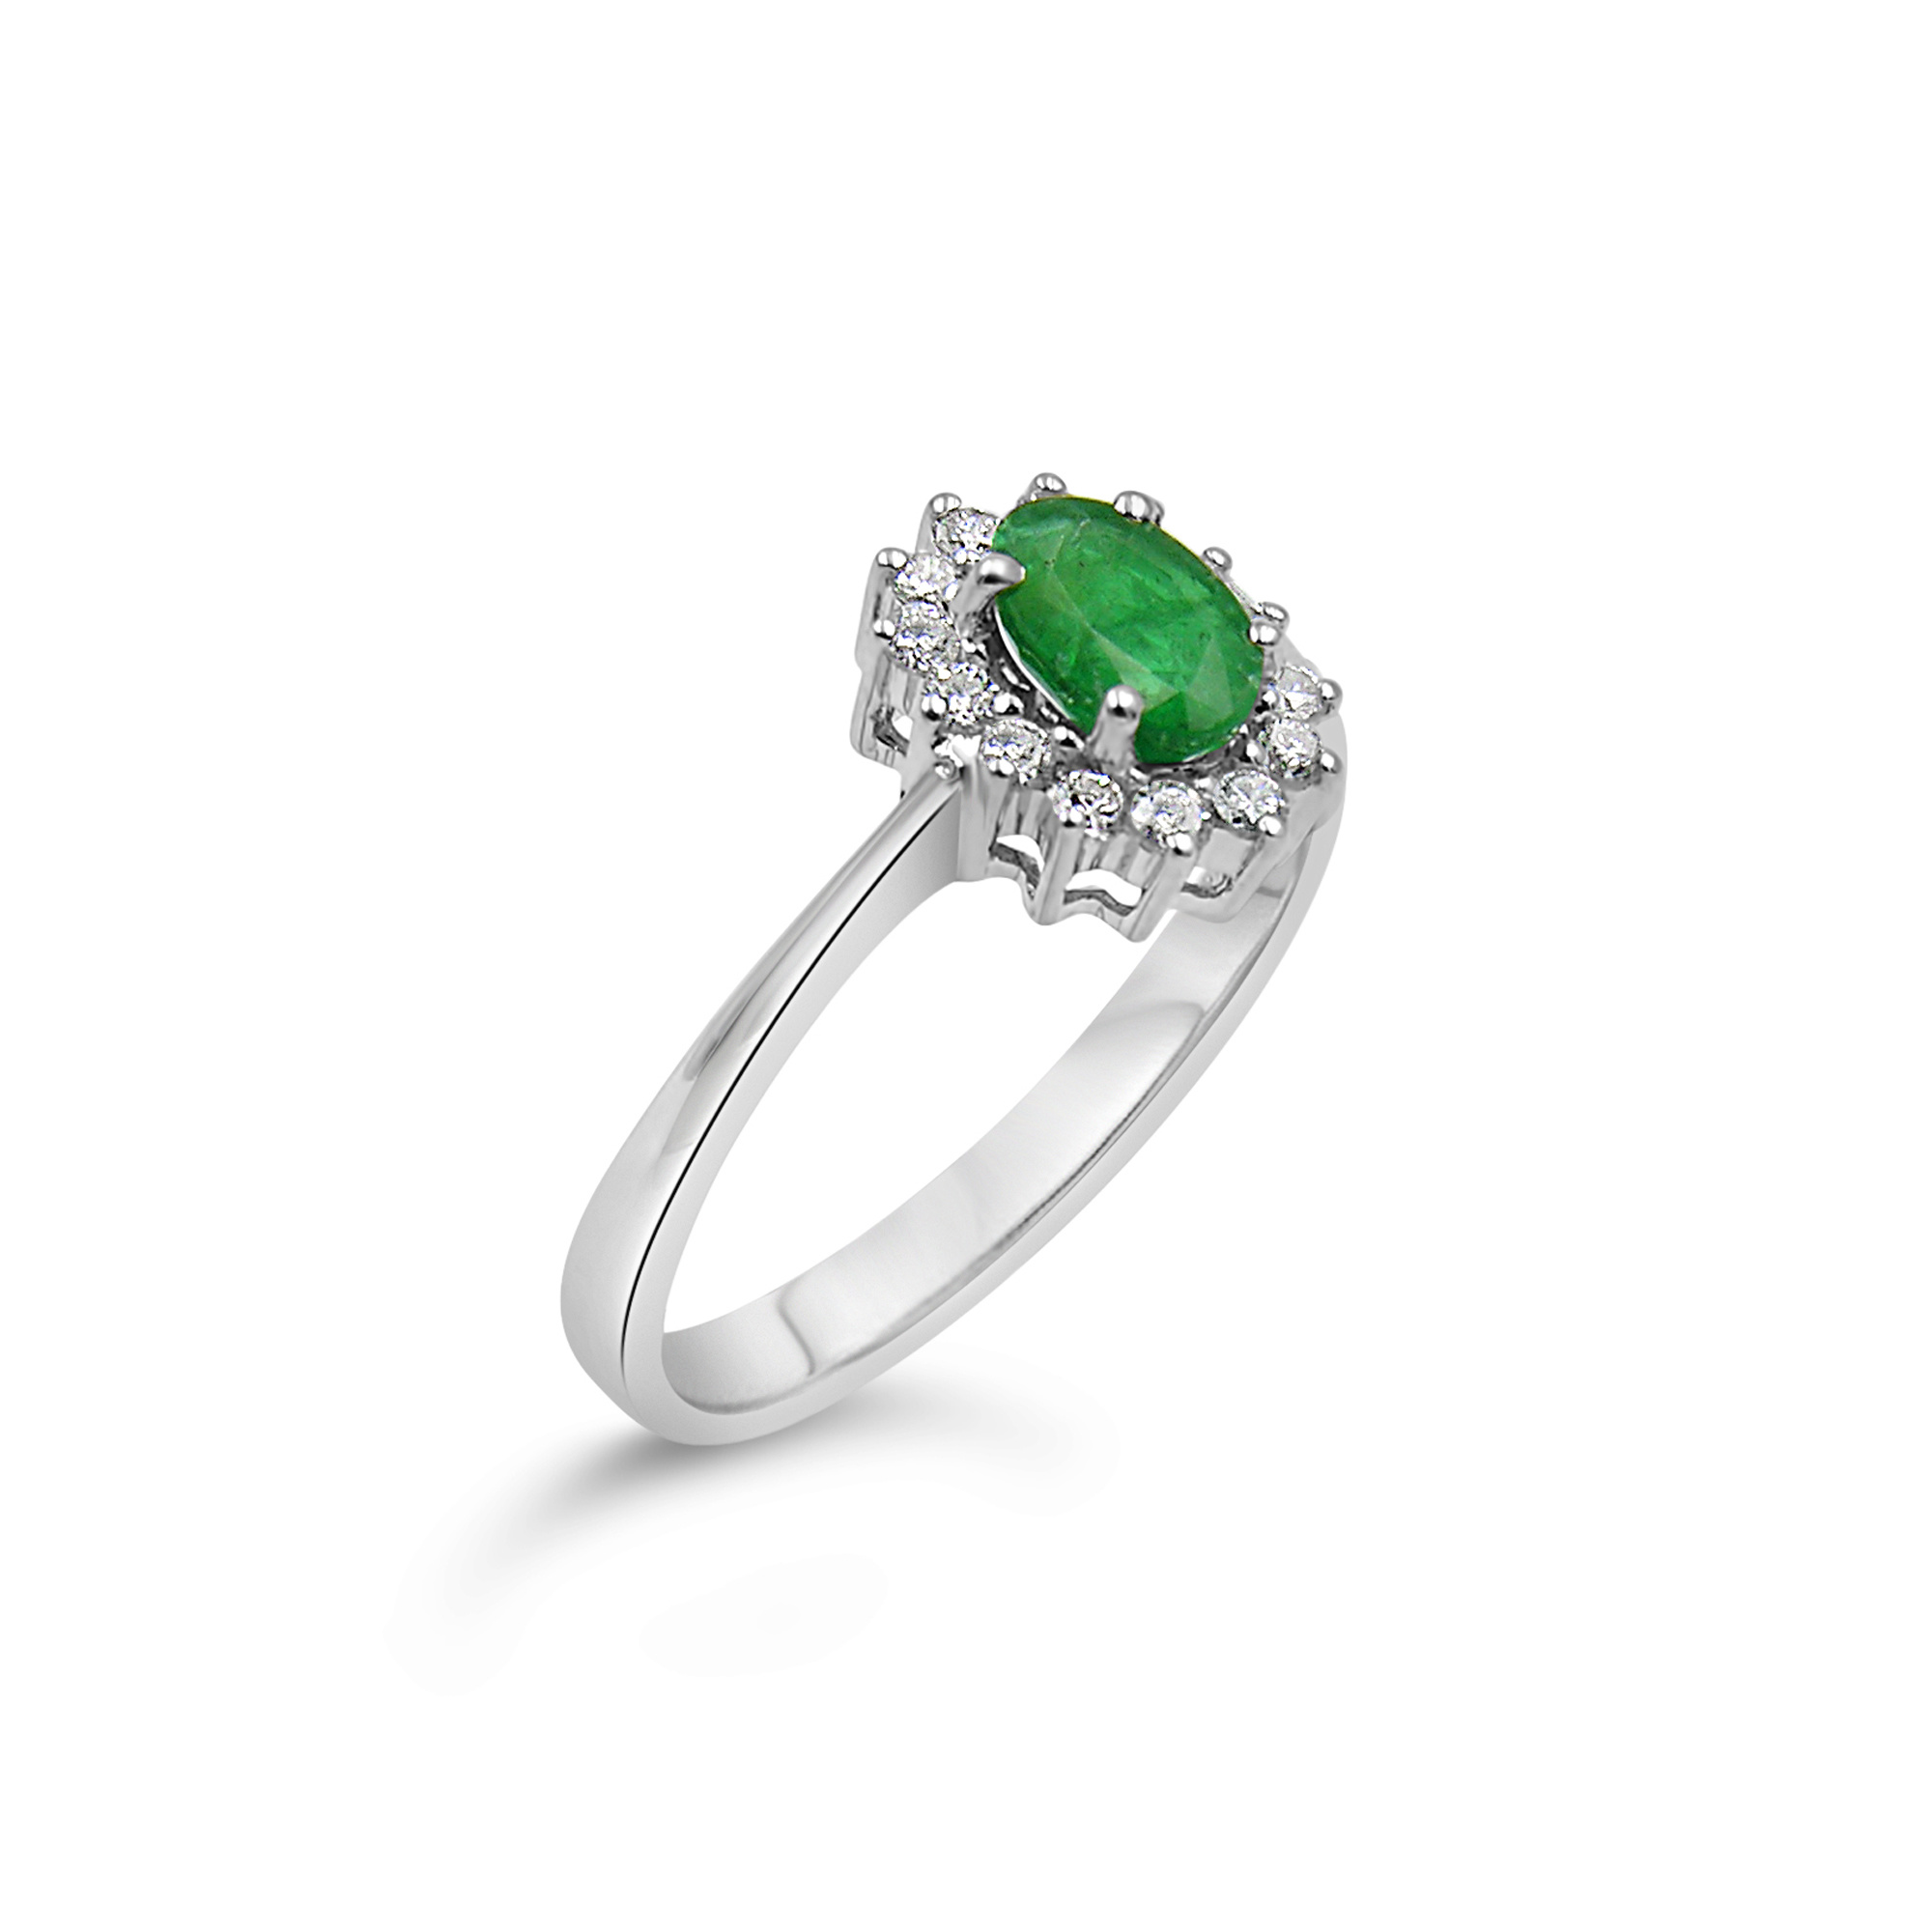 18 karaat wit goud ring met 0.20 ct diamanten & 0.50 ct smaragd